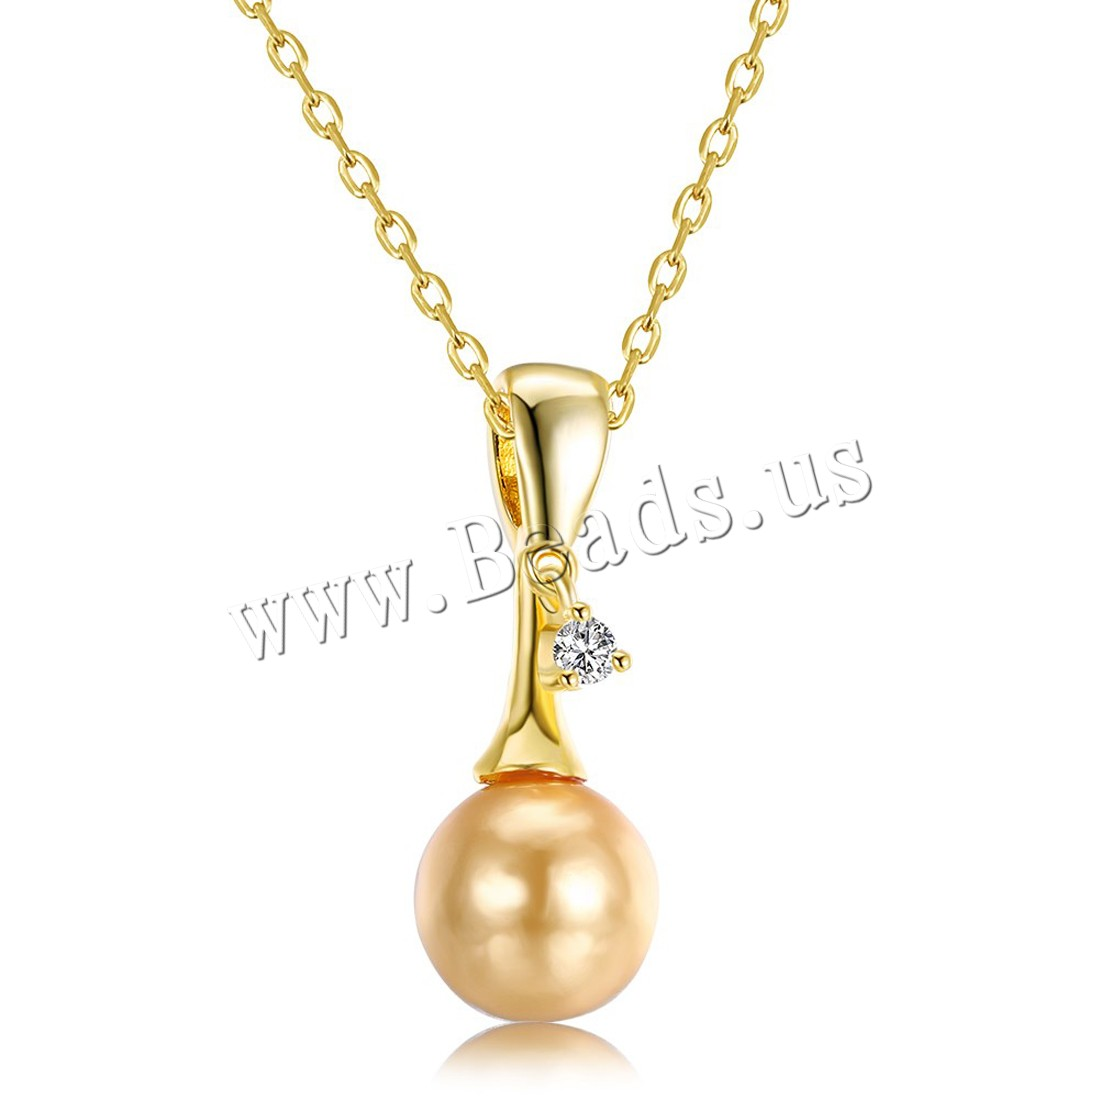 Buy Comeon® Jewelry Necklace Brass Freshwater Pearl 1.9lnch extender chain real gold plated natural & oval chain & woman & cubic zirconia nickel lead & cadmium free 11x28mm Sold Per Approx 17.7 Inch Strand